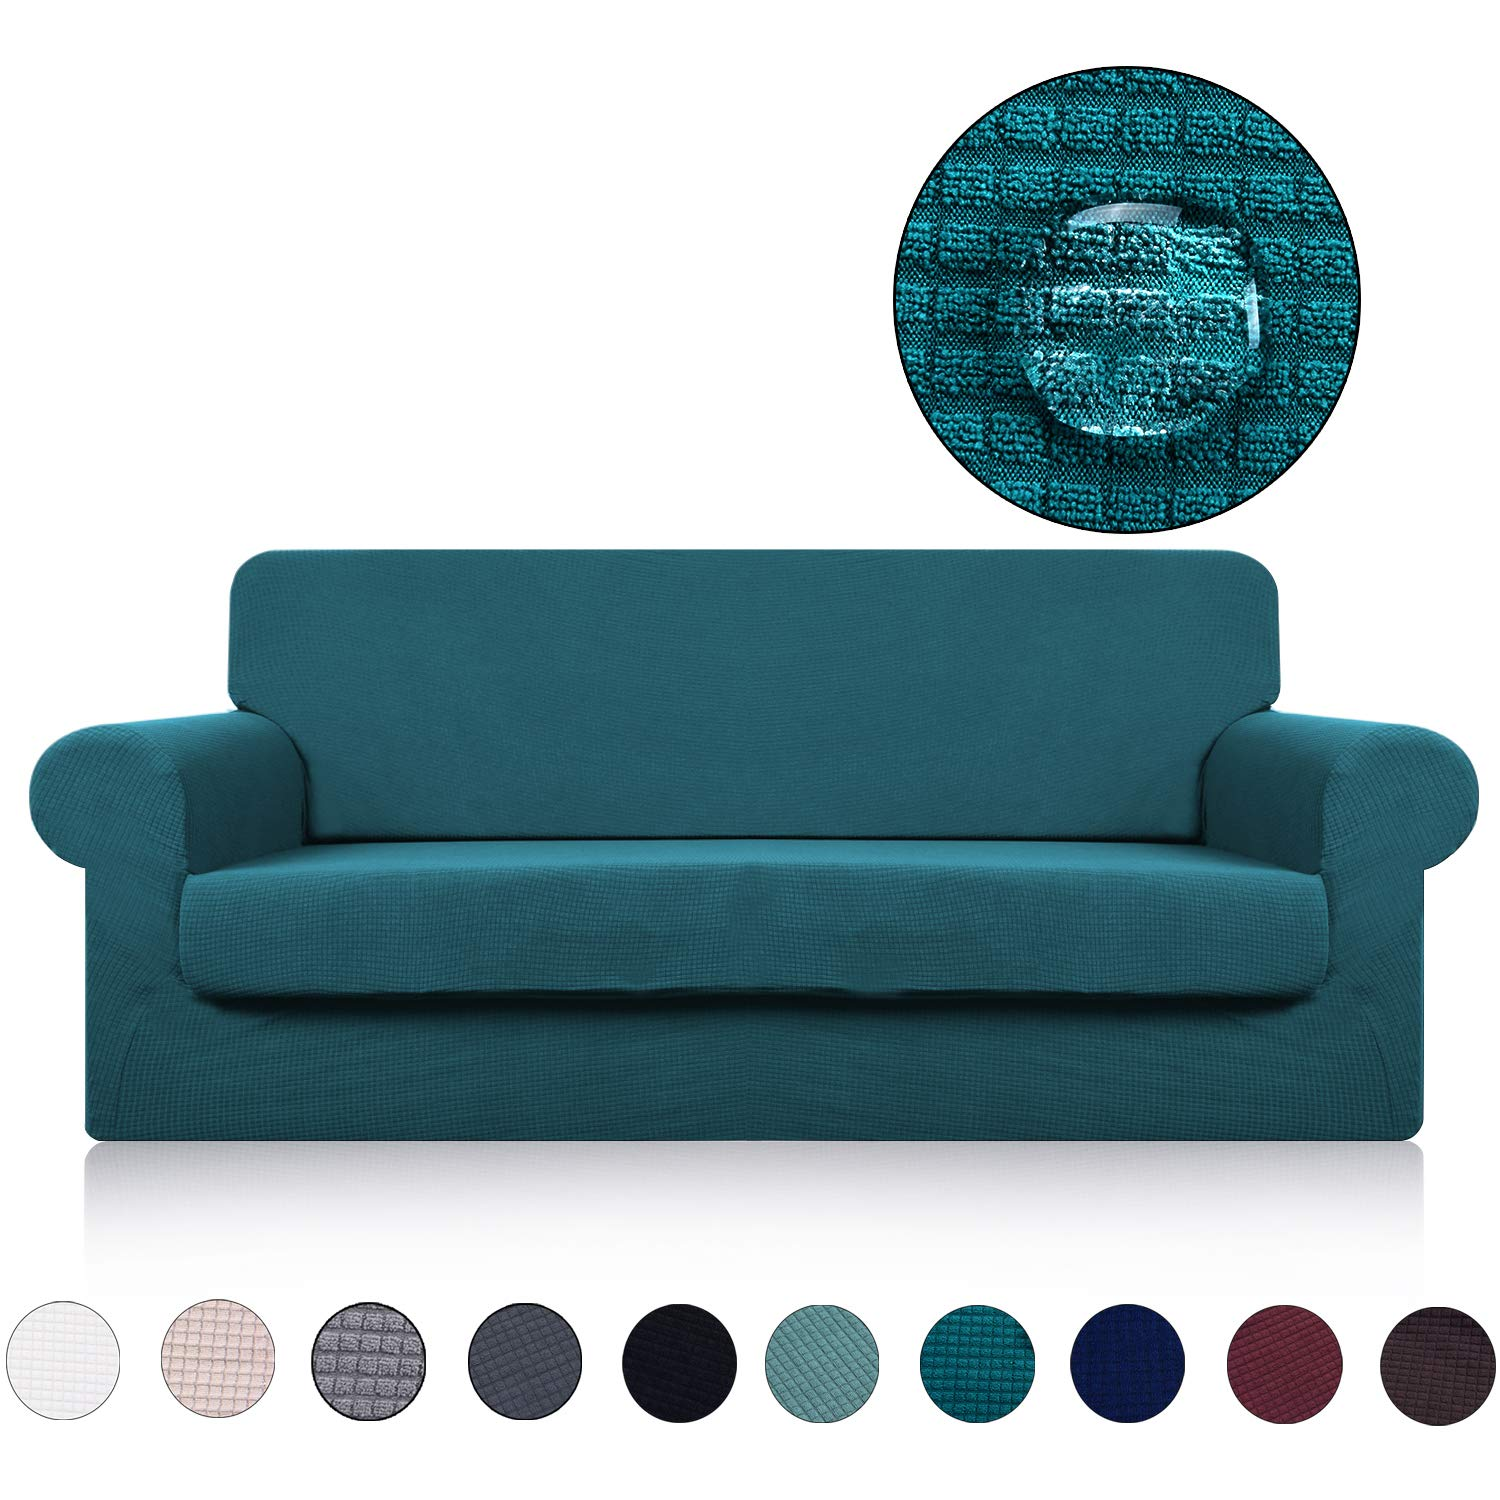 Large Sofa Cover with Separate Seat Cushion Cover(2 Pieces Set) - Water Repellent,Knitted Jacquard,High Stretch - Living Room Couch Slipcover/Protector/Shield for Dog Cat Pets(4 Seater Sofa,Teal)